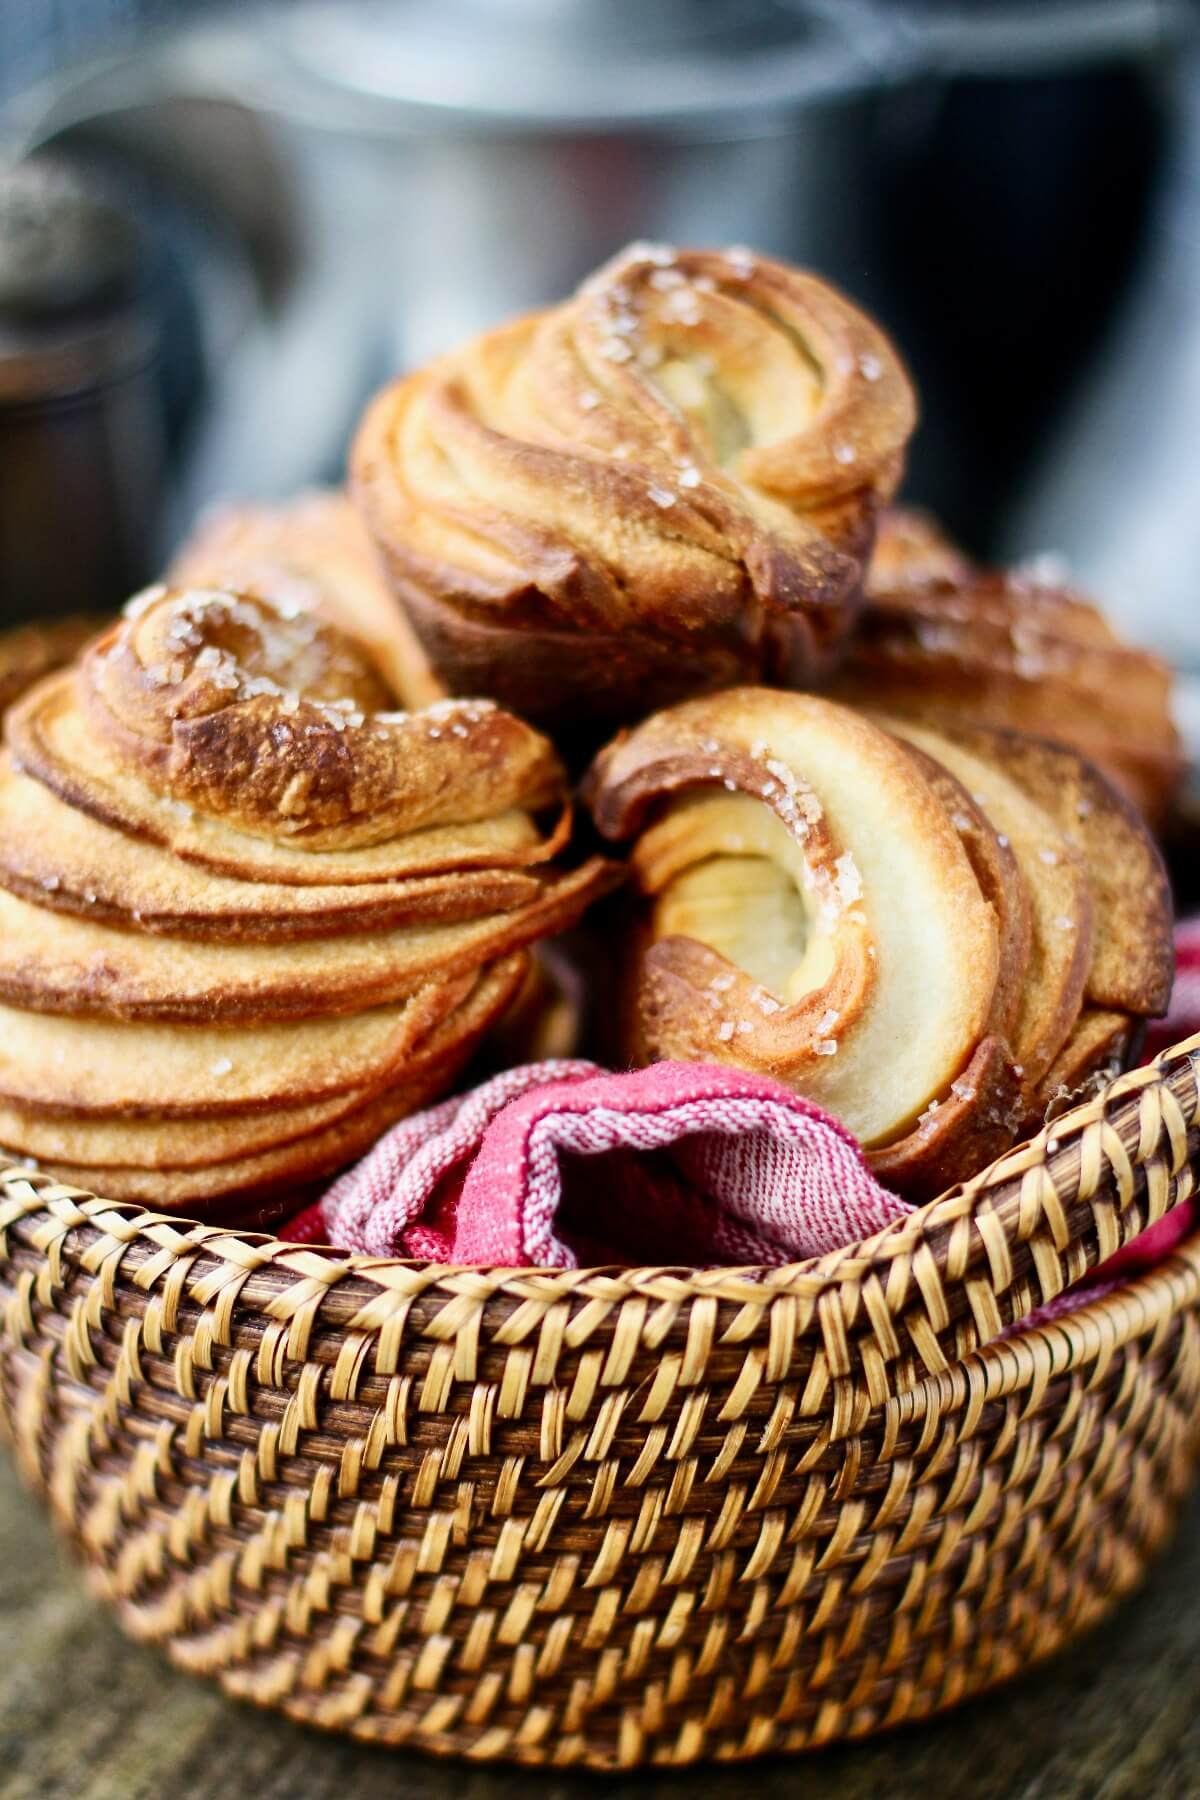 Cruffins (Easy Croissant Muffins) in a basket.